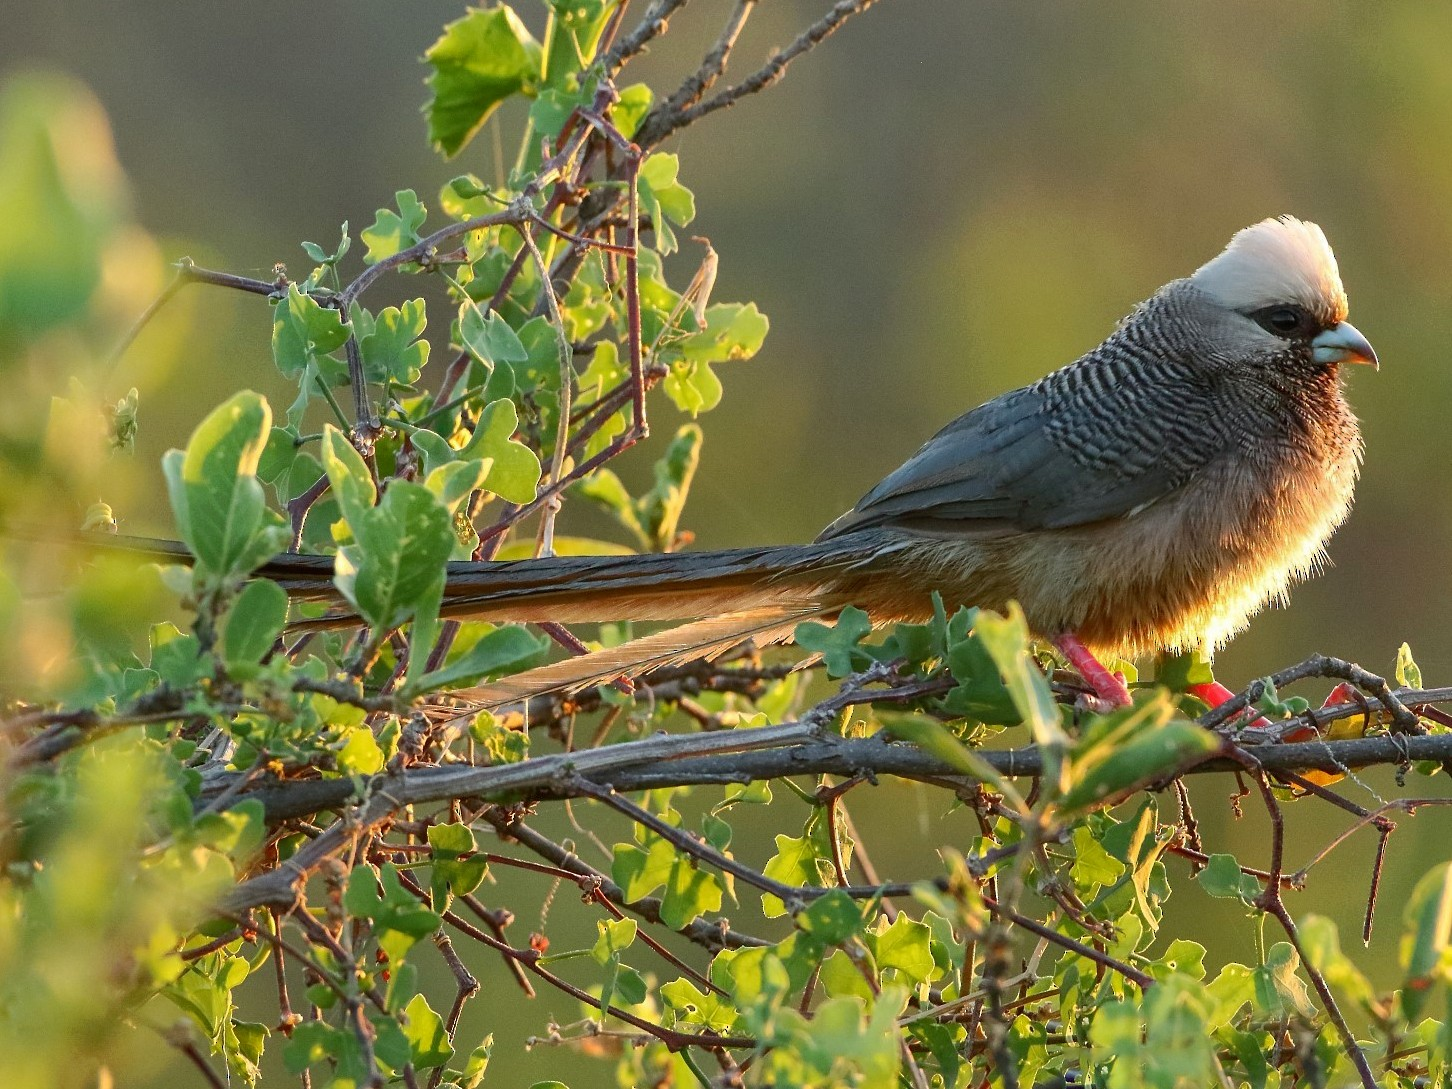 White-headed Mousebird - Markus Lilje